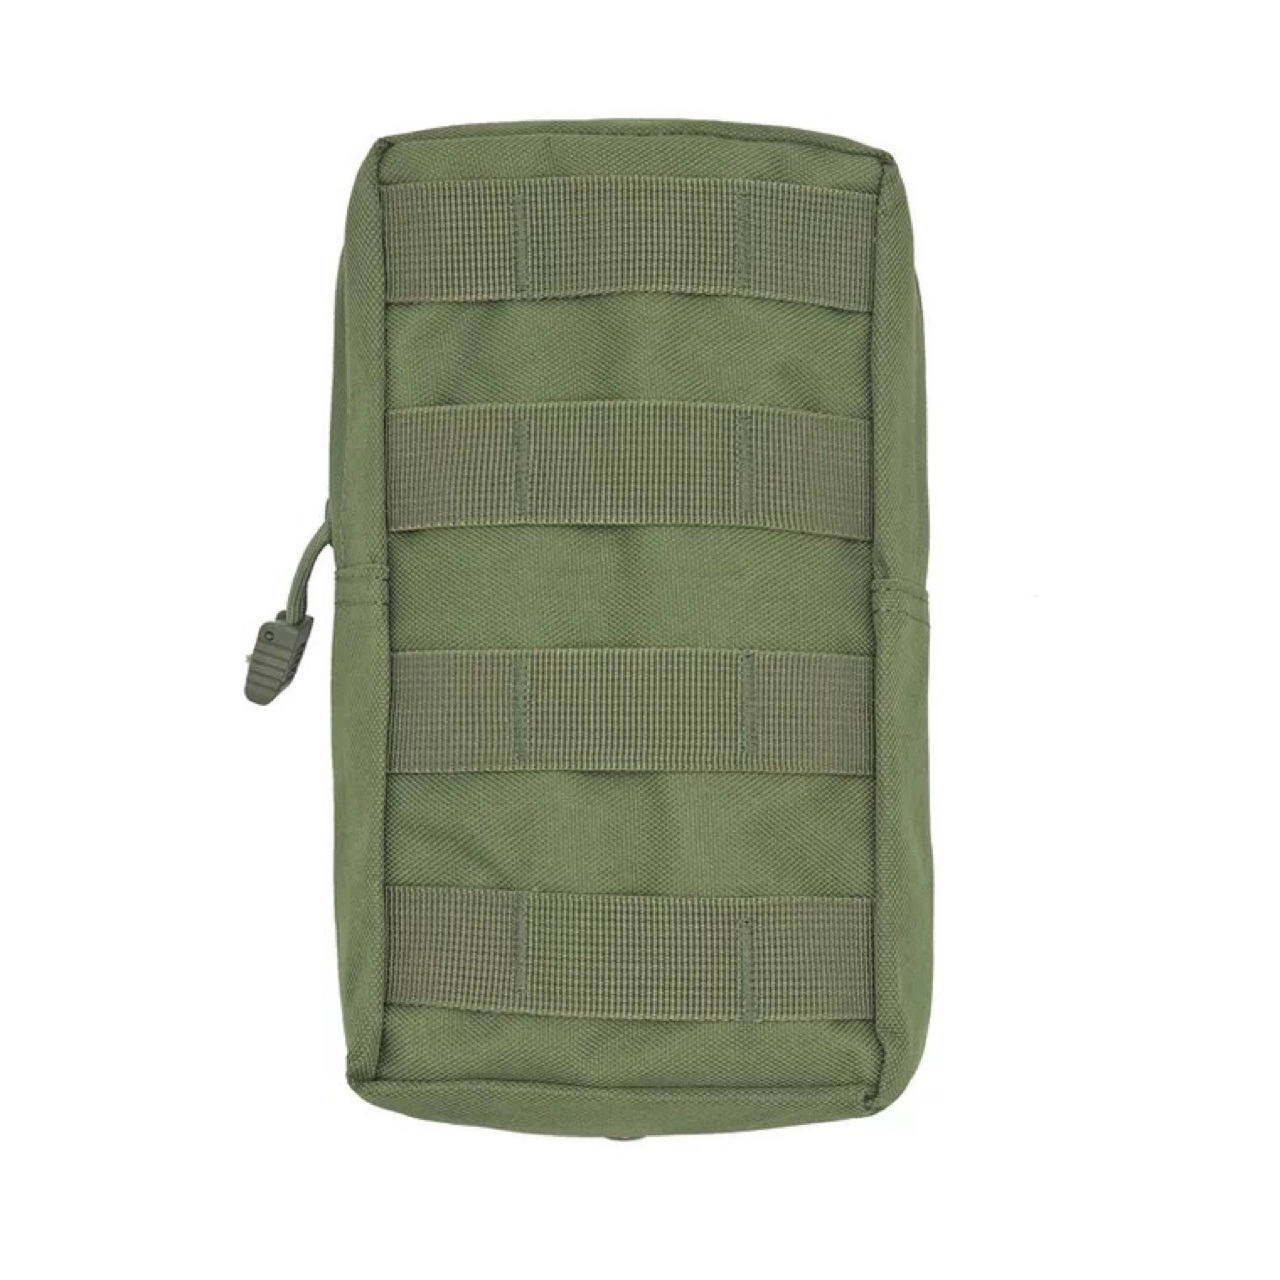 Tactical Vest CS Accessory Kit Molle Portable Outdoor Sports Wear Leather Belt Mobile Phone Waist Bag Currently Available Wholes